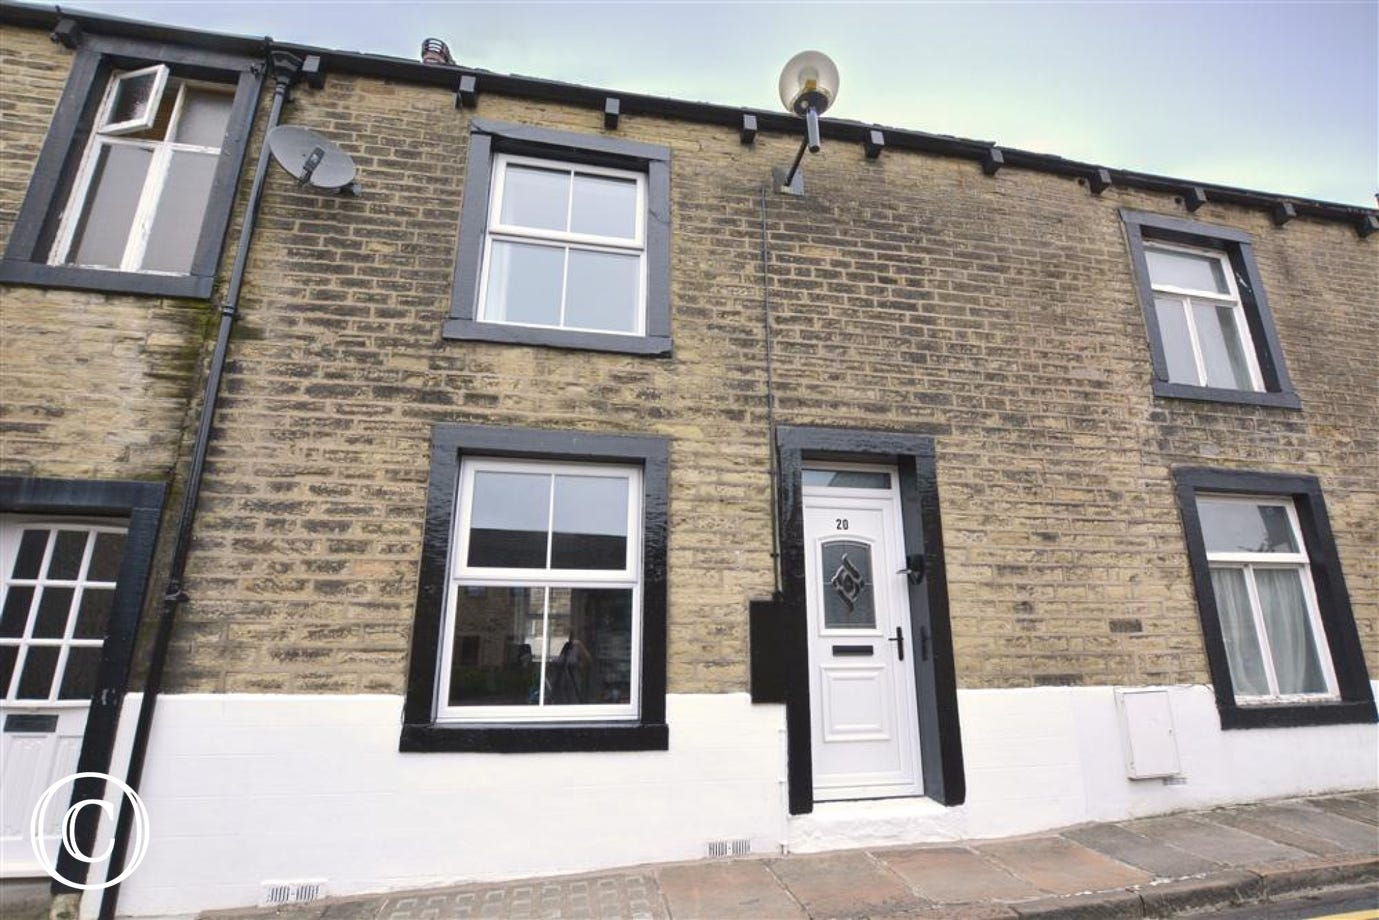 The property has ideal for exploring Skipton.